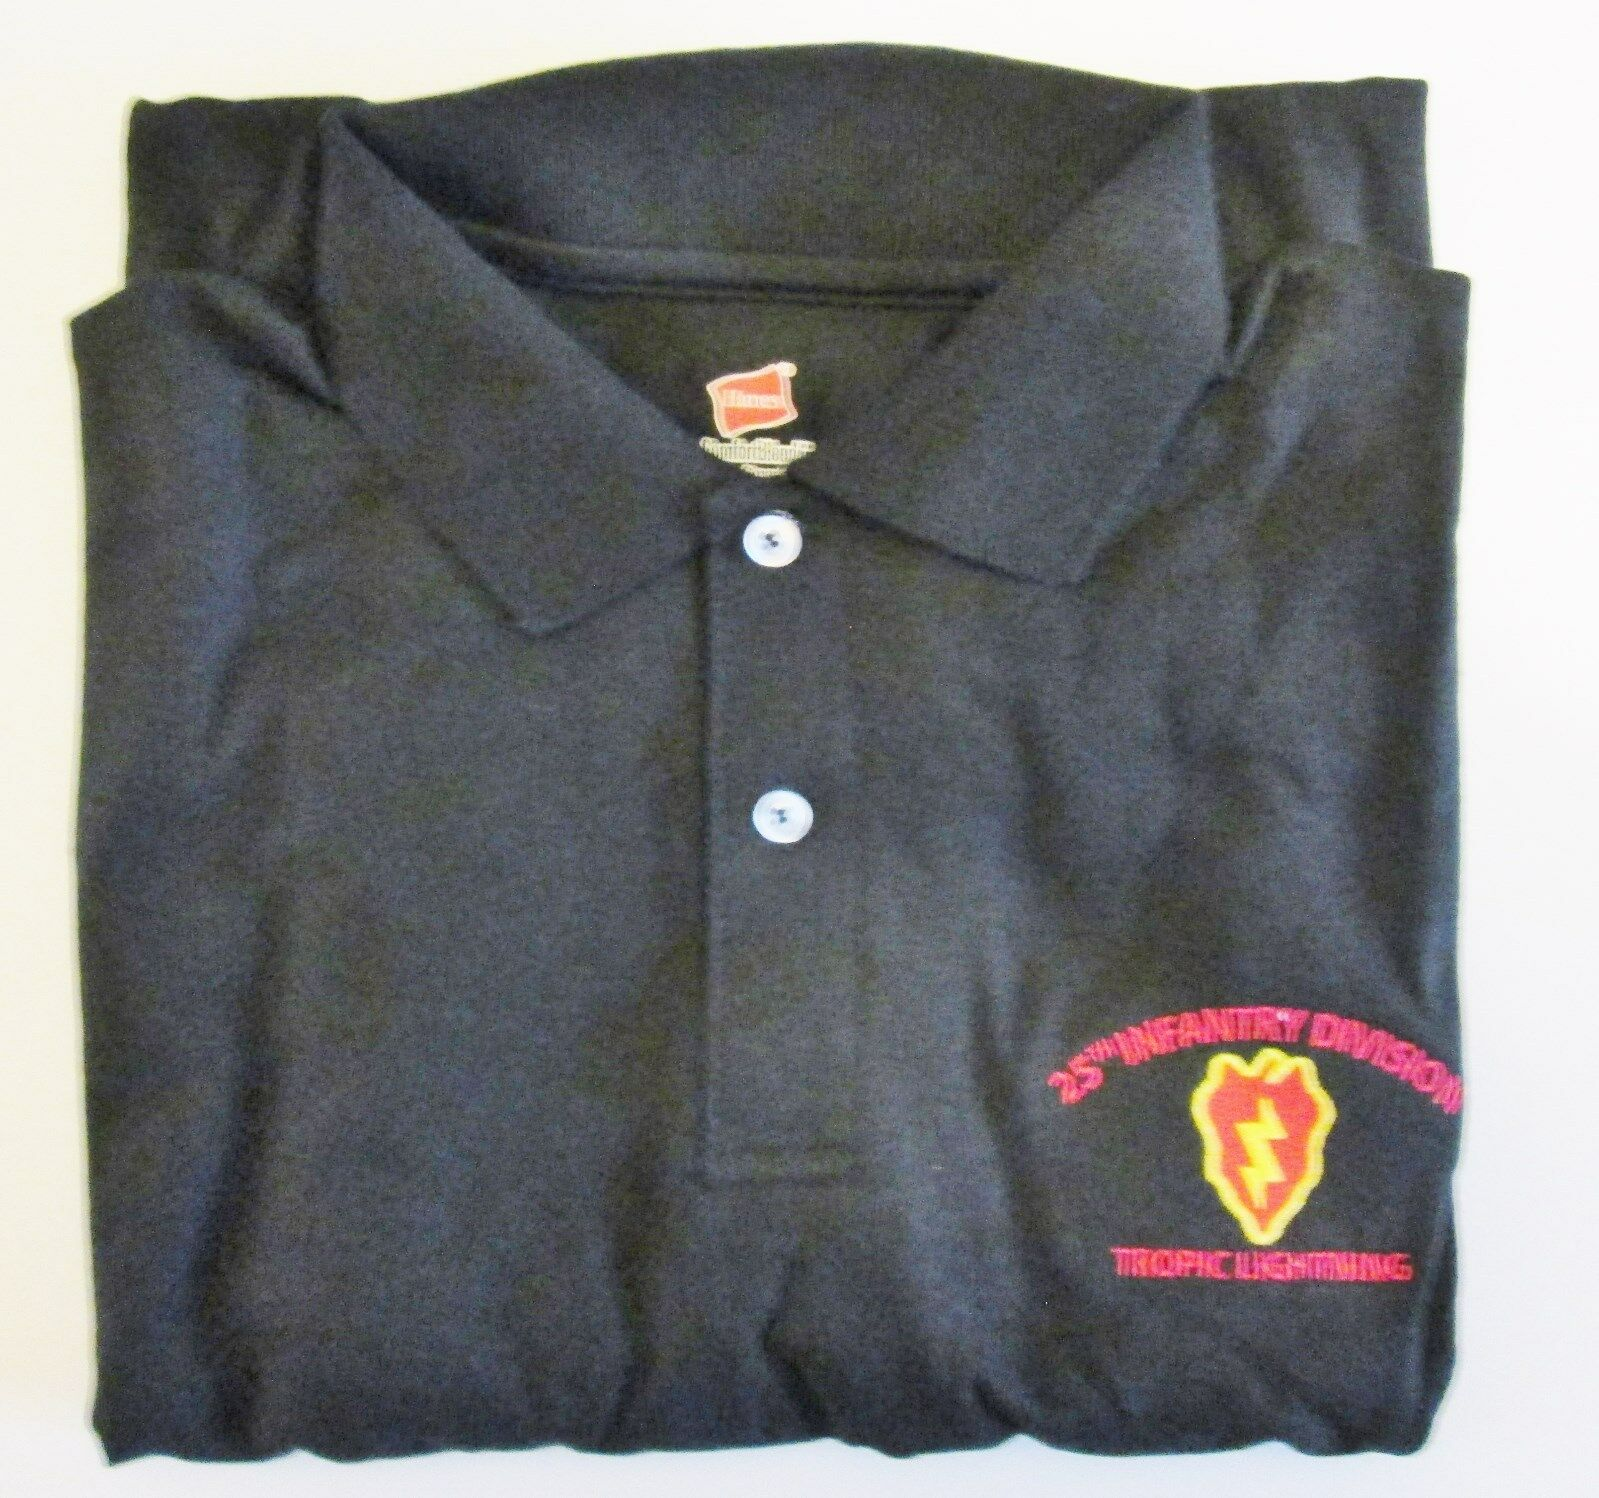 25TH INFANTRY DIVISION   TROPIC LIGHTNING   EMBROIDERED LIGHTWEIGHT POLO SHIRT